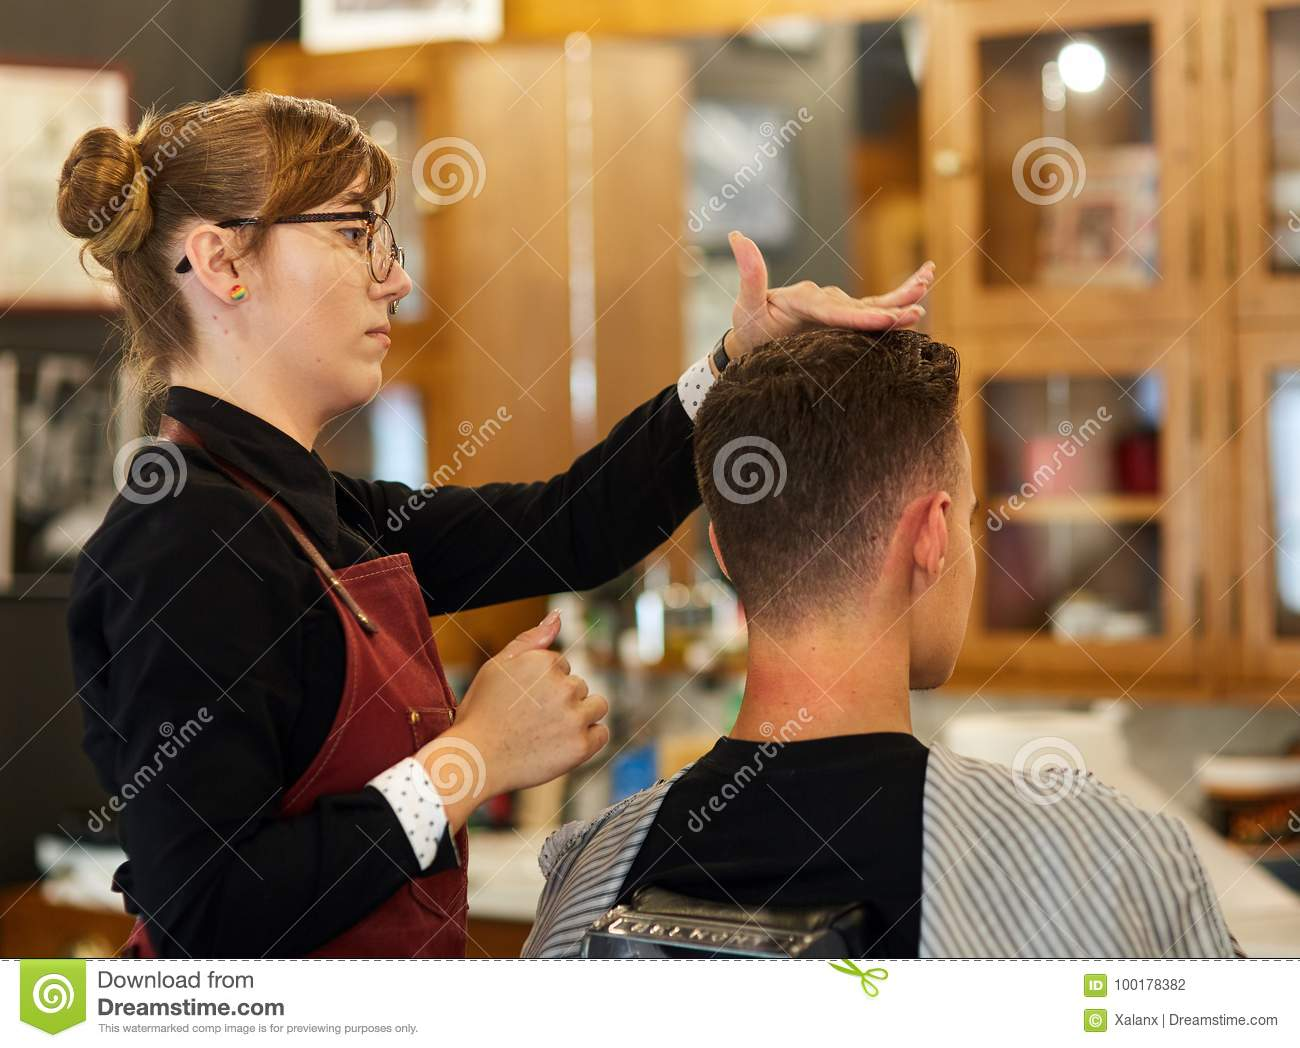 Young Man Getting A Haircut Stock Photo Image Of Head Barbershop